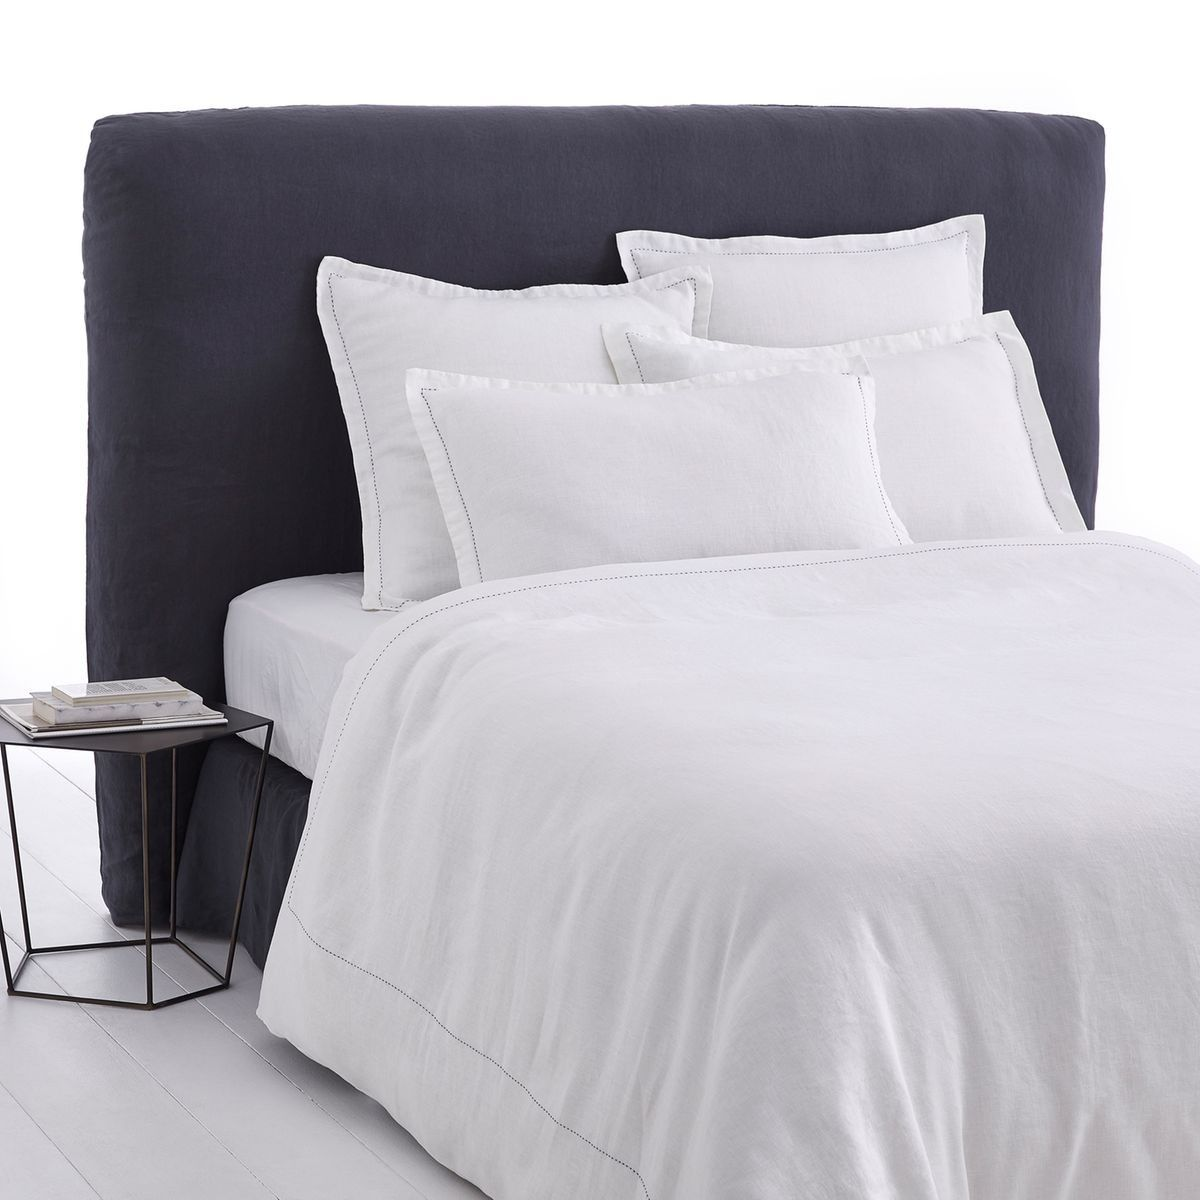 Housse Couette Lin Lave Brodee Ponteggia Taille 260x240 Cm 140x200 Cm 200x200 Cm 240x220 Cm Housse De Couette Lin Housse De Couette Et Couette En Lin